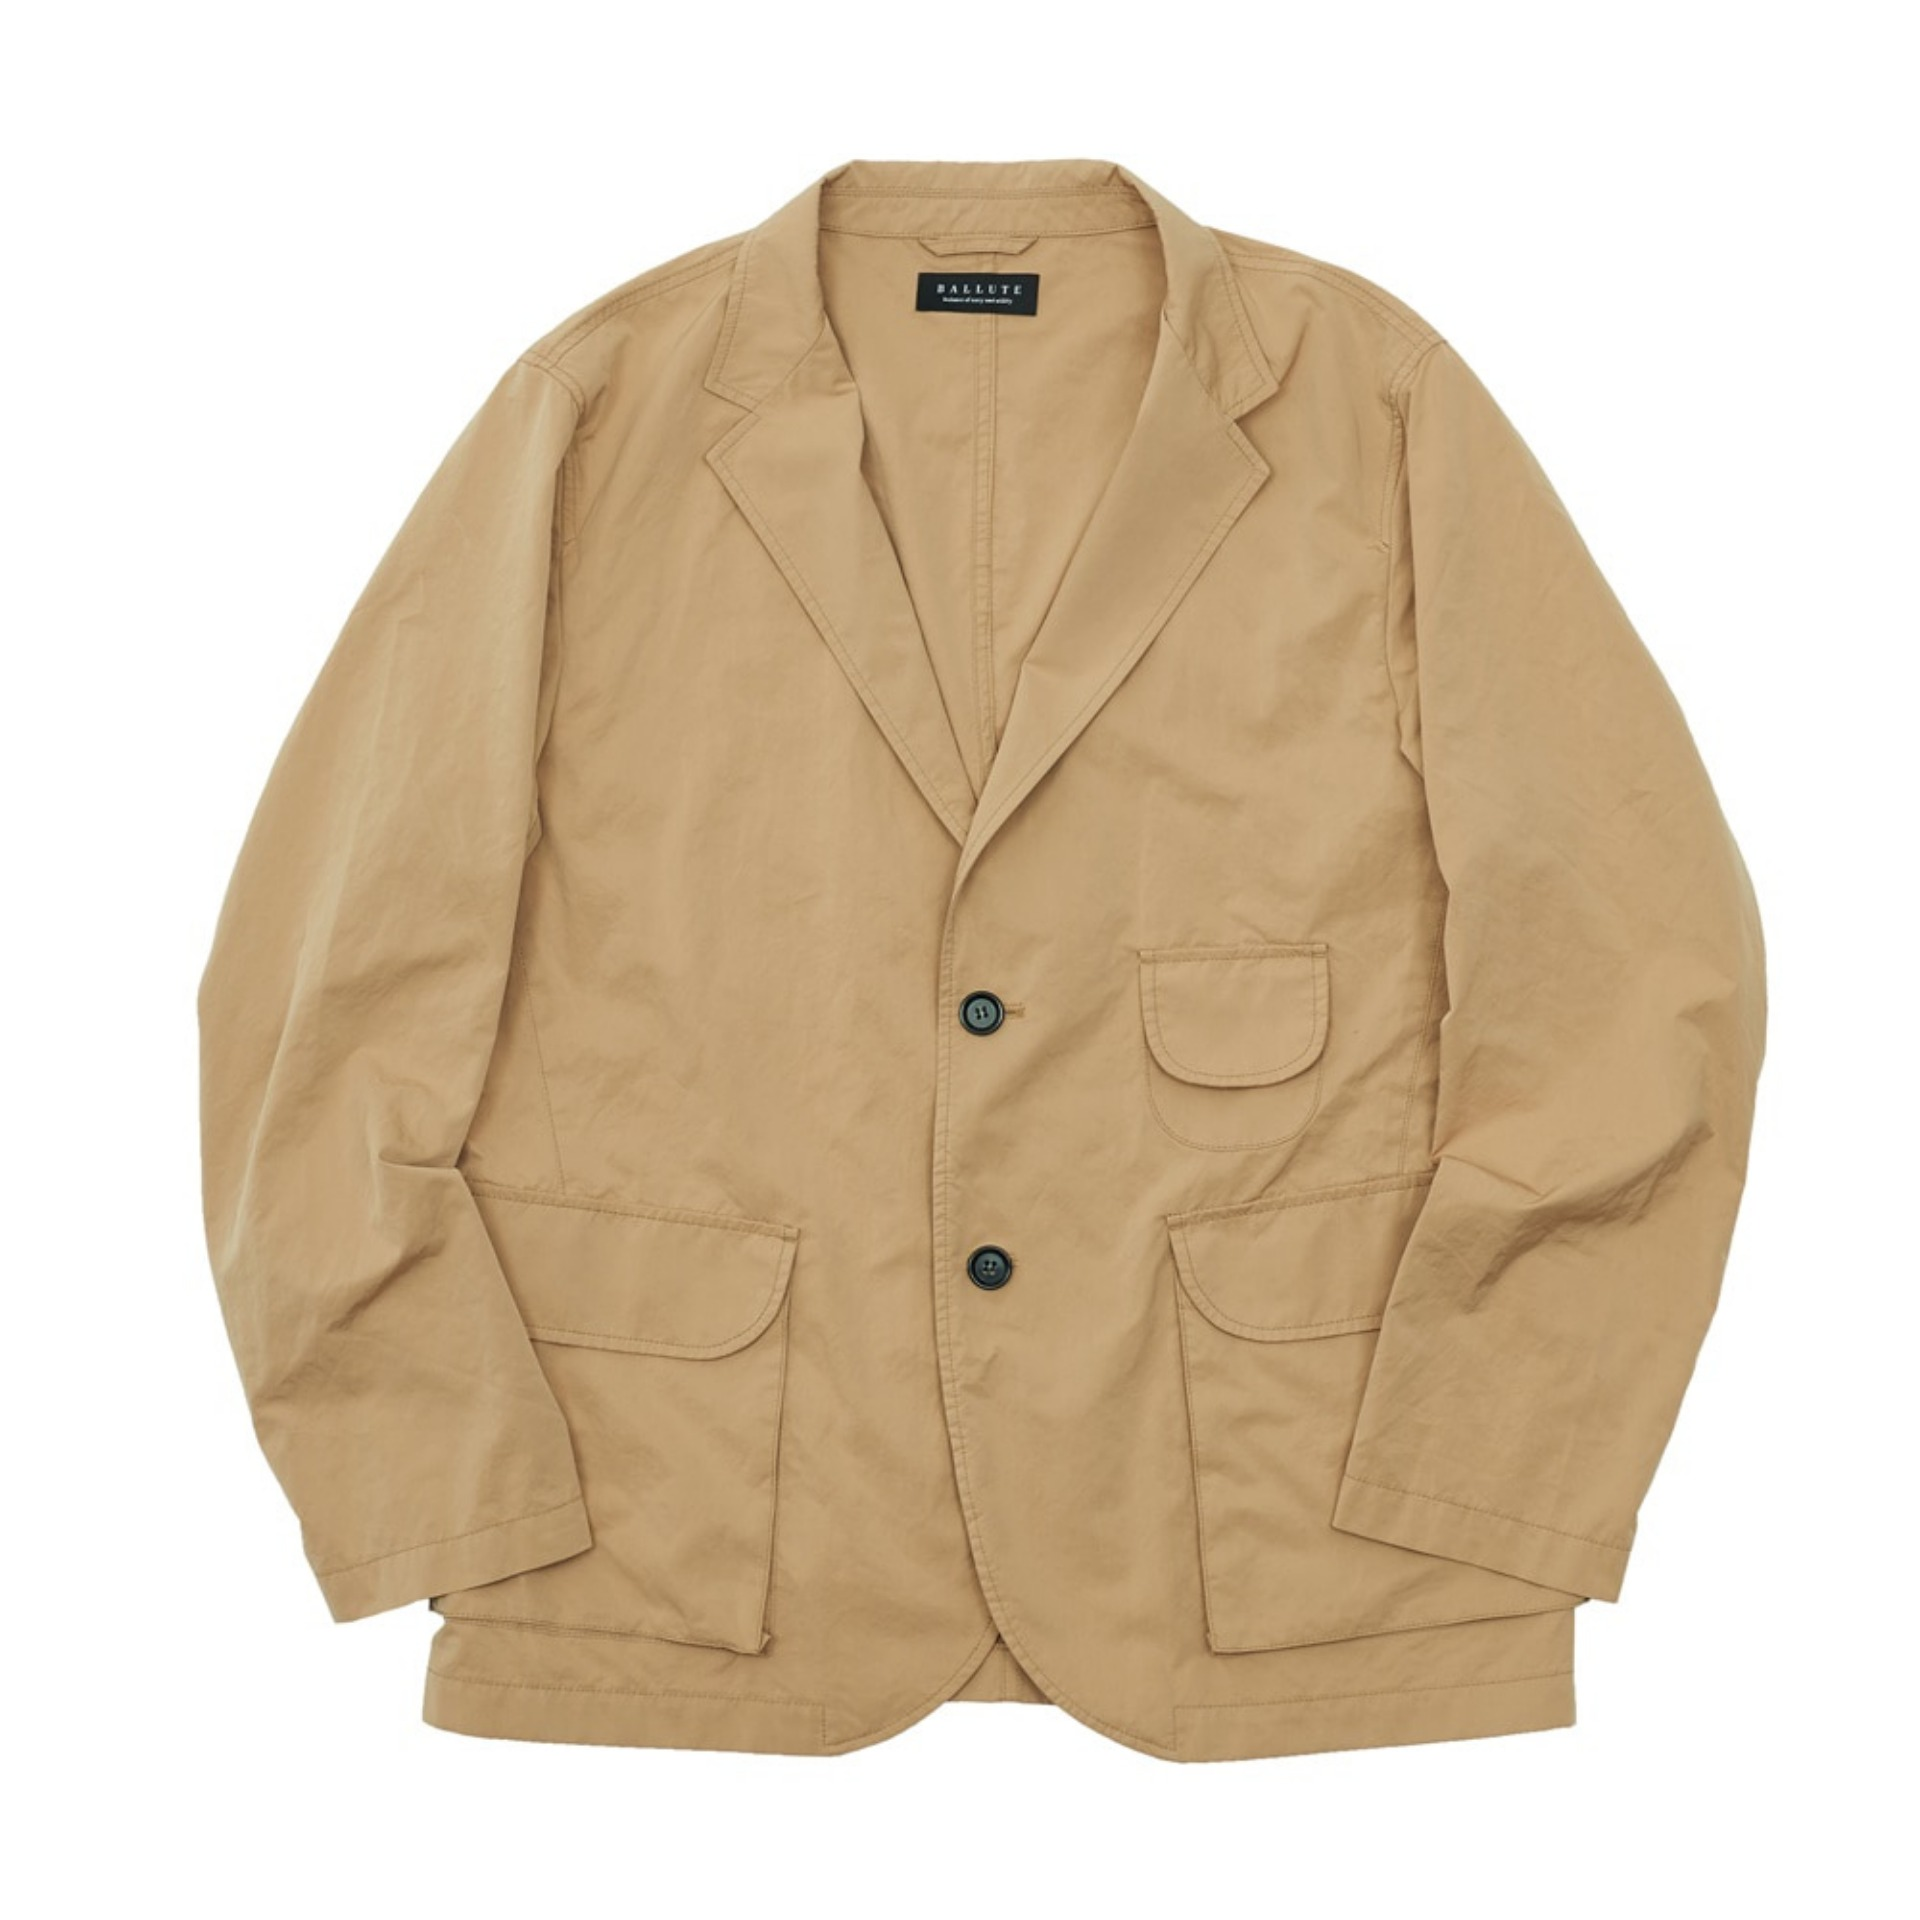 ALL WEATHER JACKET(BEIGE)